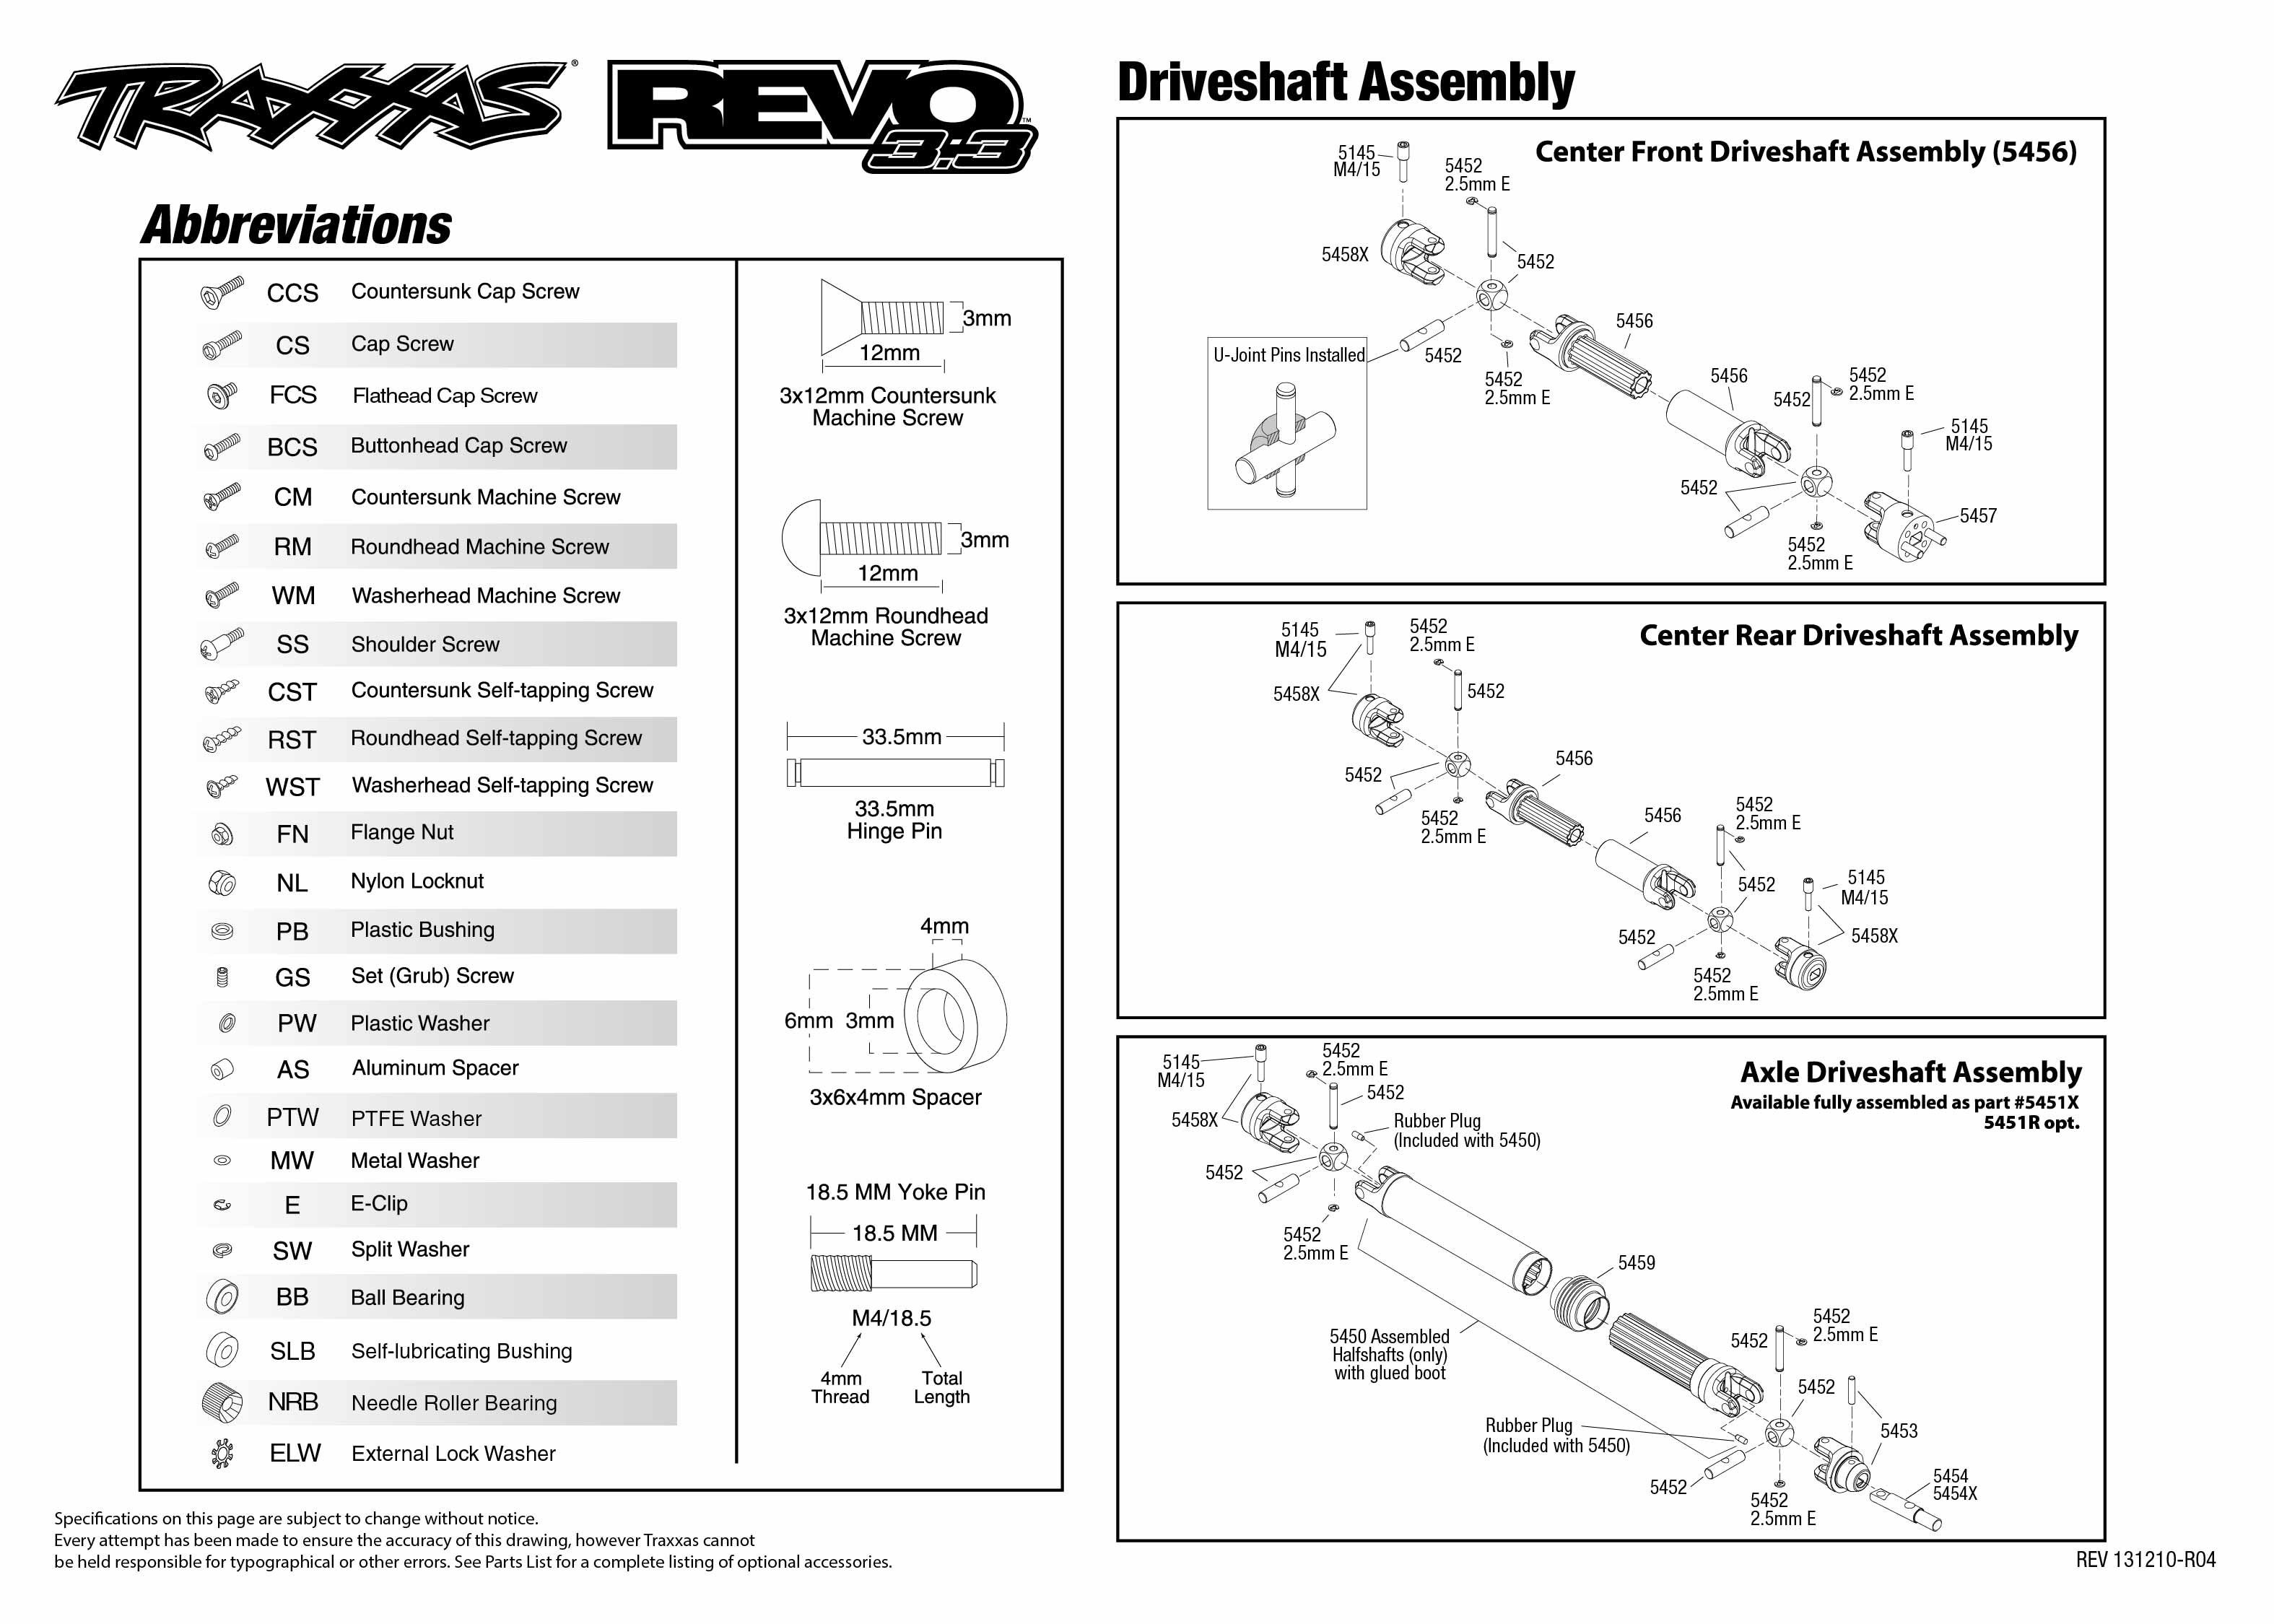 5309_Revo33 TQi exploded views 131210_5309 Driveshafts Assembly diagrams 555312 rsf opel 3 wiring diagram google rsf opel 3 traxxas revo 3.3 wiring diagram at eliteediting.co